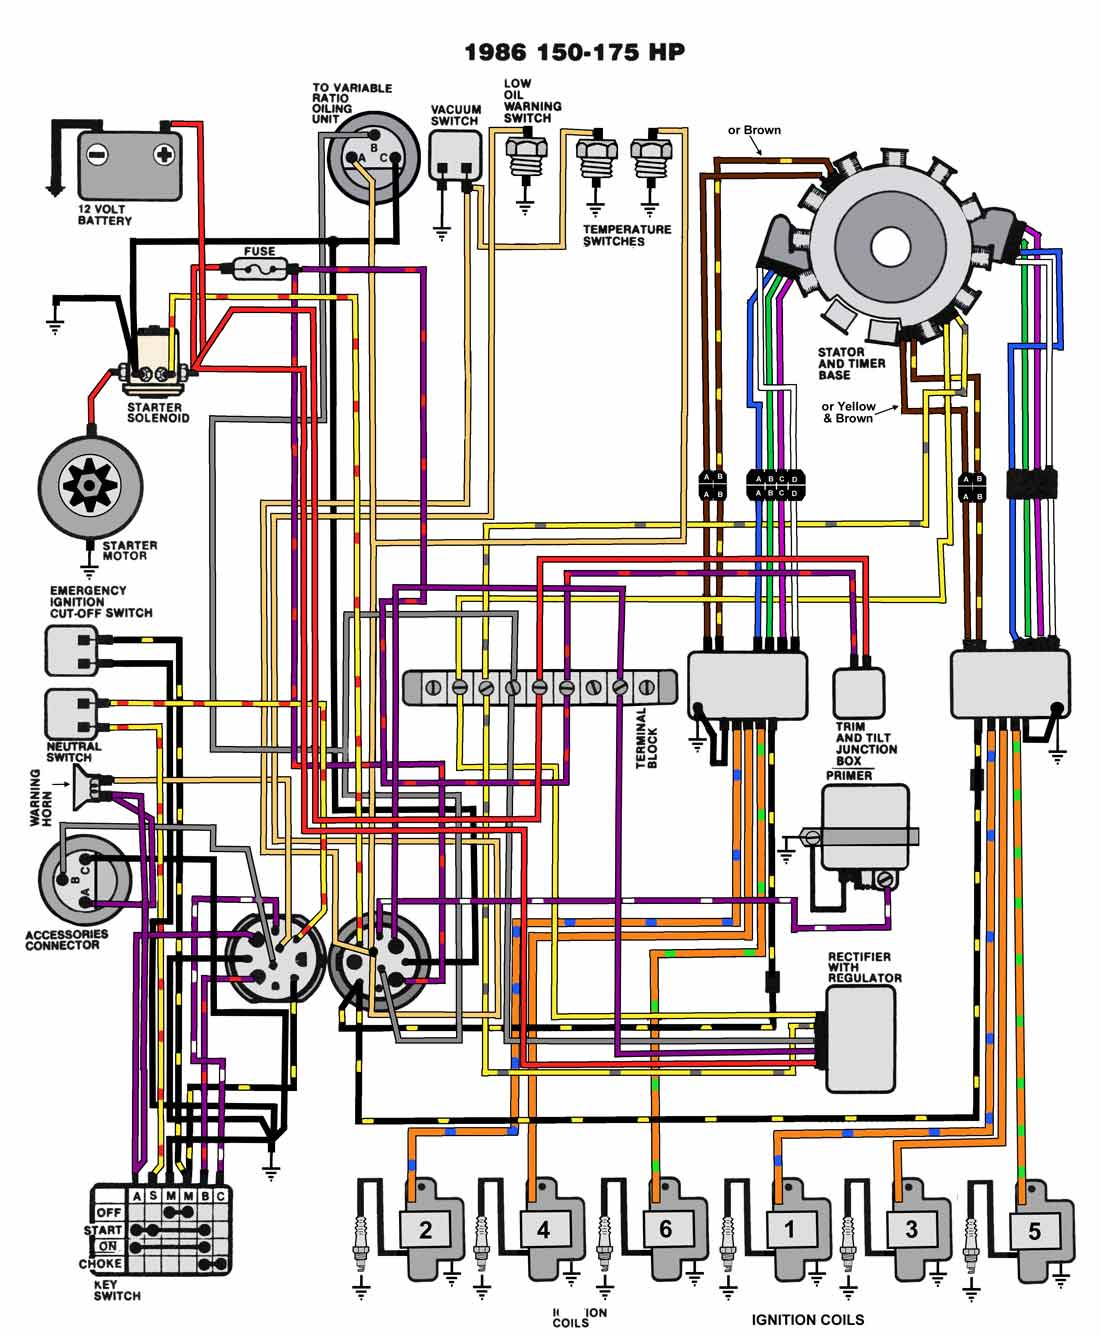 90 Hp Johnson Wiring Diagram Best Secret Wire Harness Maker Outboard Circuit 40 98